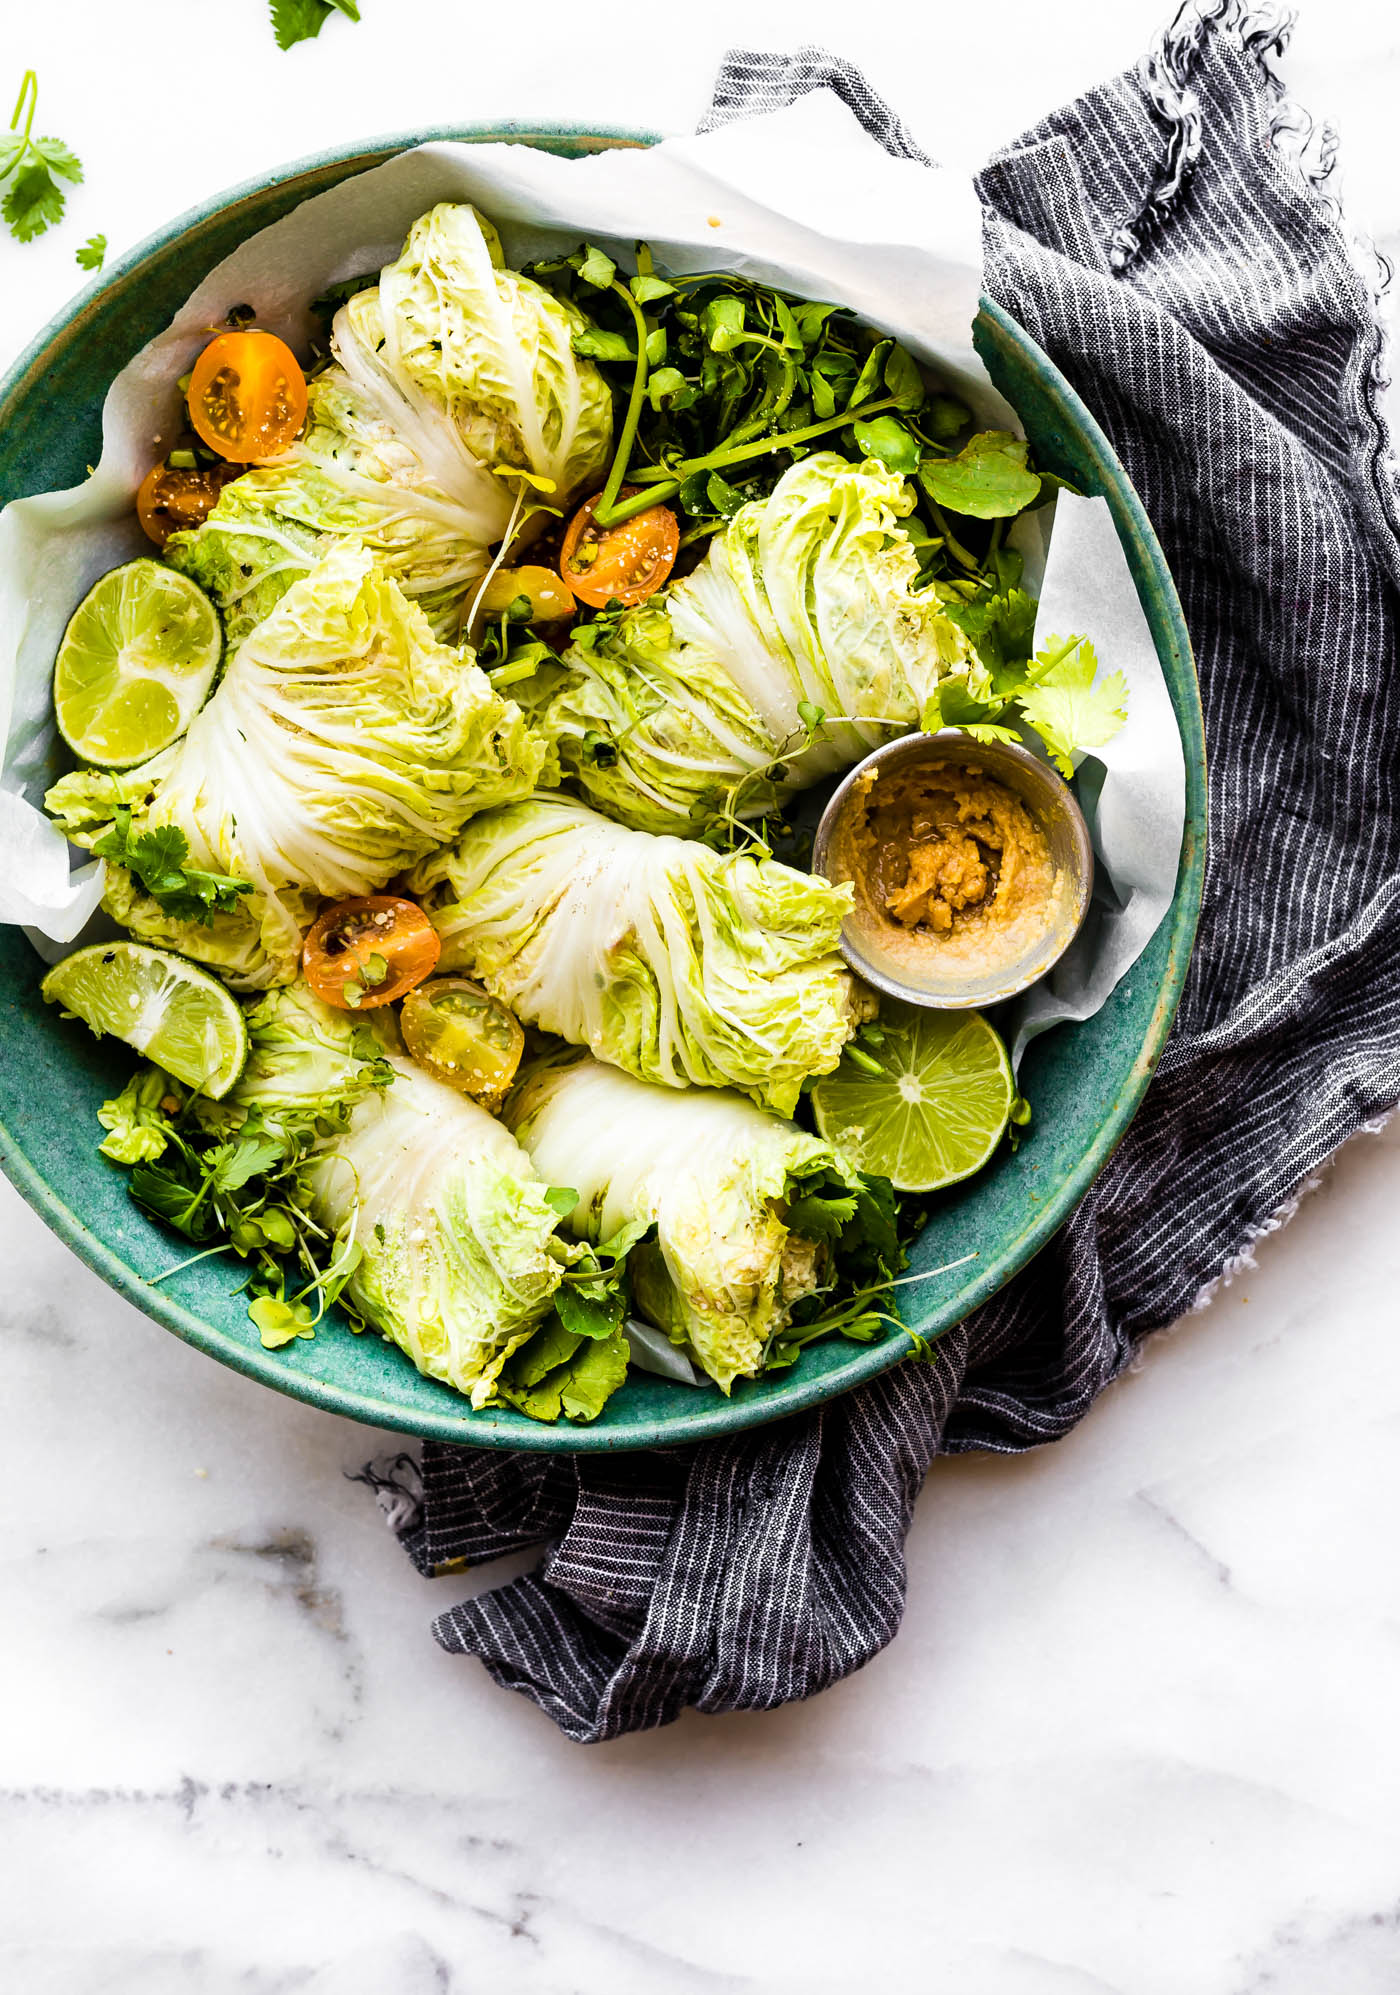 Miso Mango Chicken Salad Cabbage wraps are the perfect light low carb lunch that's easy to make! A mango chicken salad that's mayo free, paleo friendly, and flavorful! Spread the miso mango chicken salad mixture over napa cabbage, add a little bit of watercress, then firmly roll up! Bam, a perfectly handy lunch or light dinner!